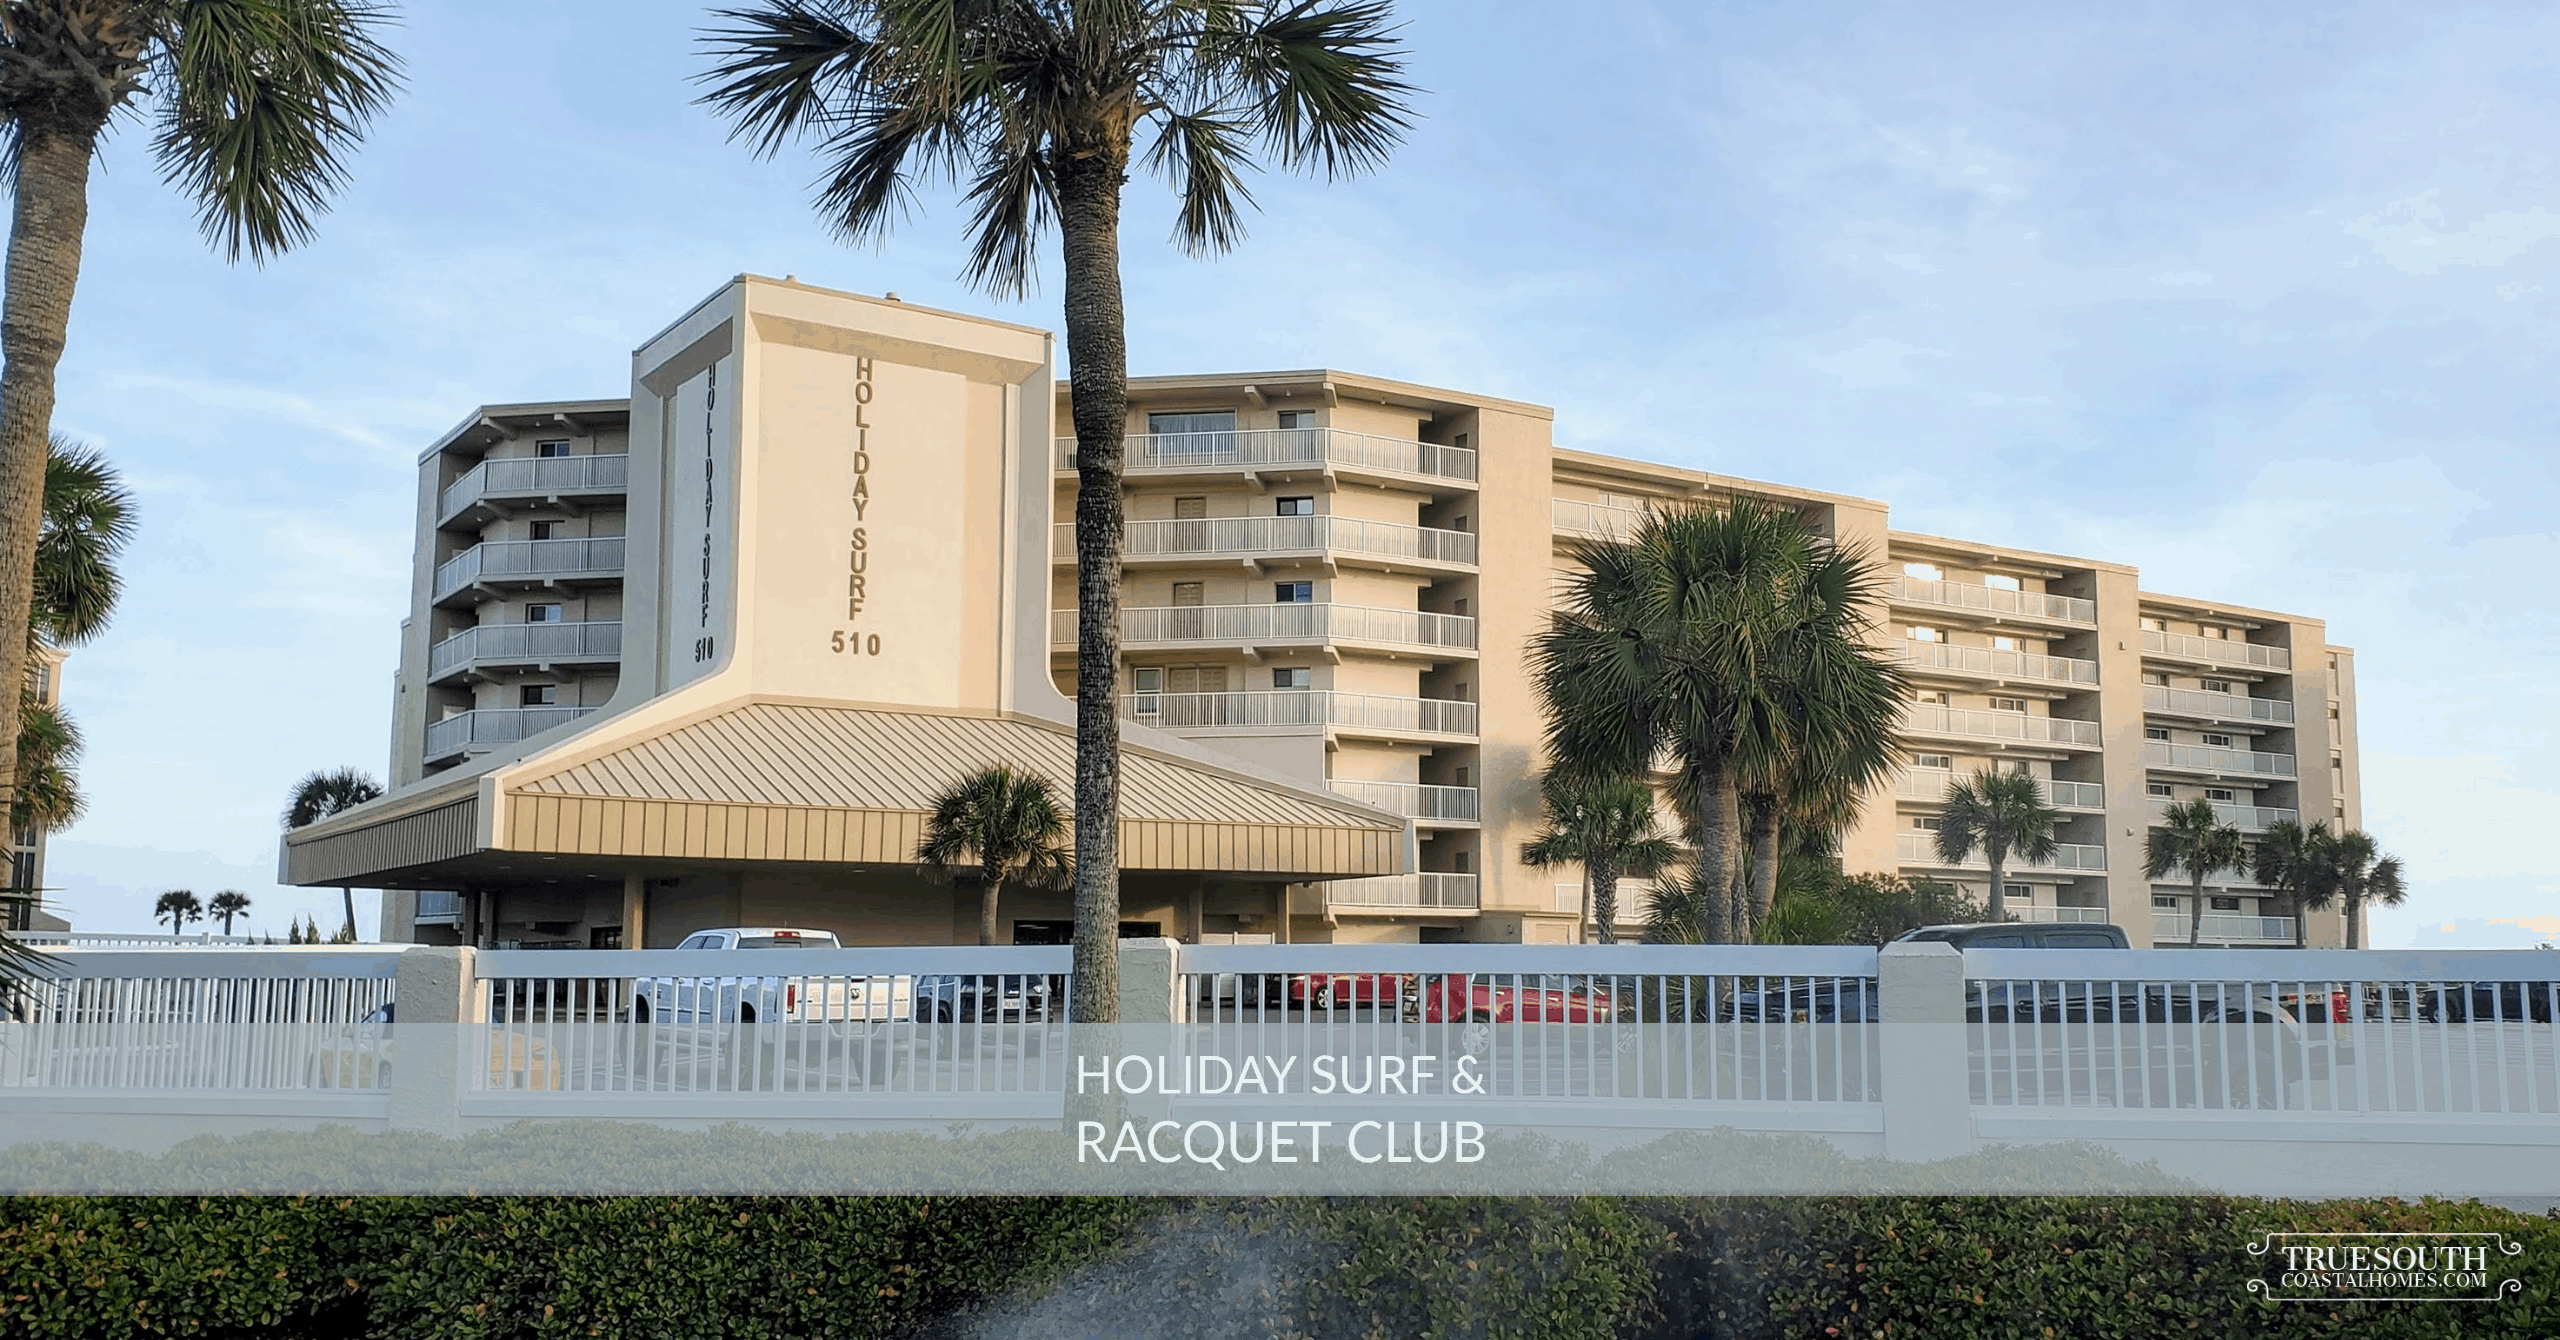 Holiday Surf & Racquet Club Front View